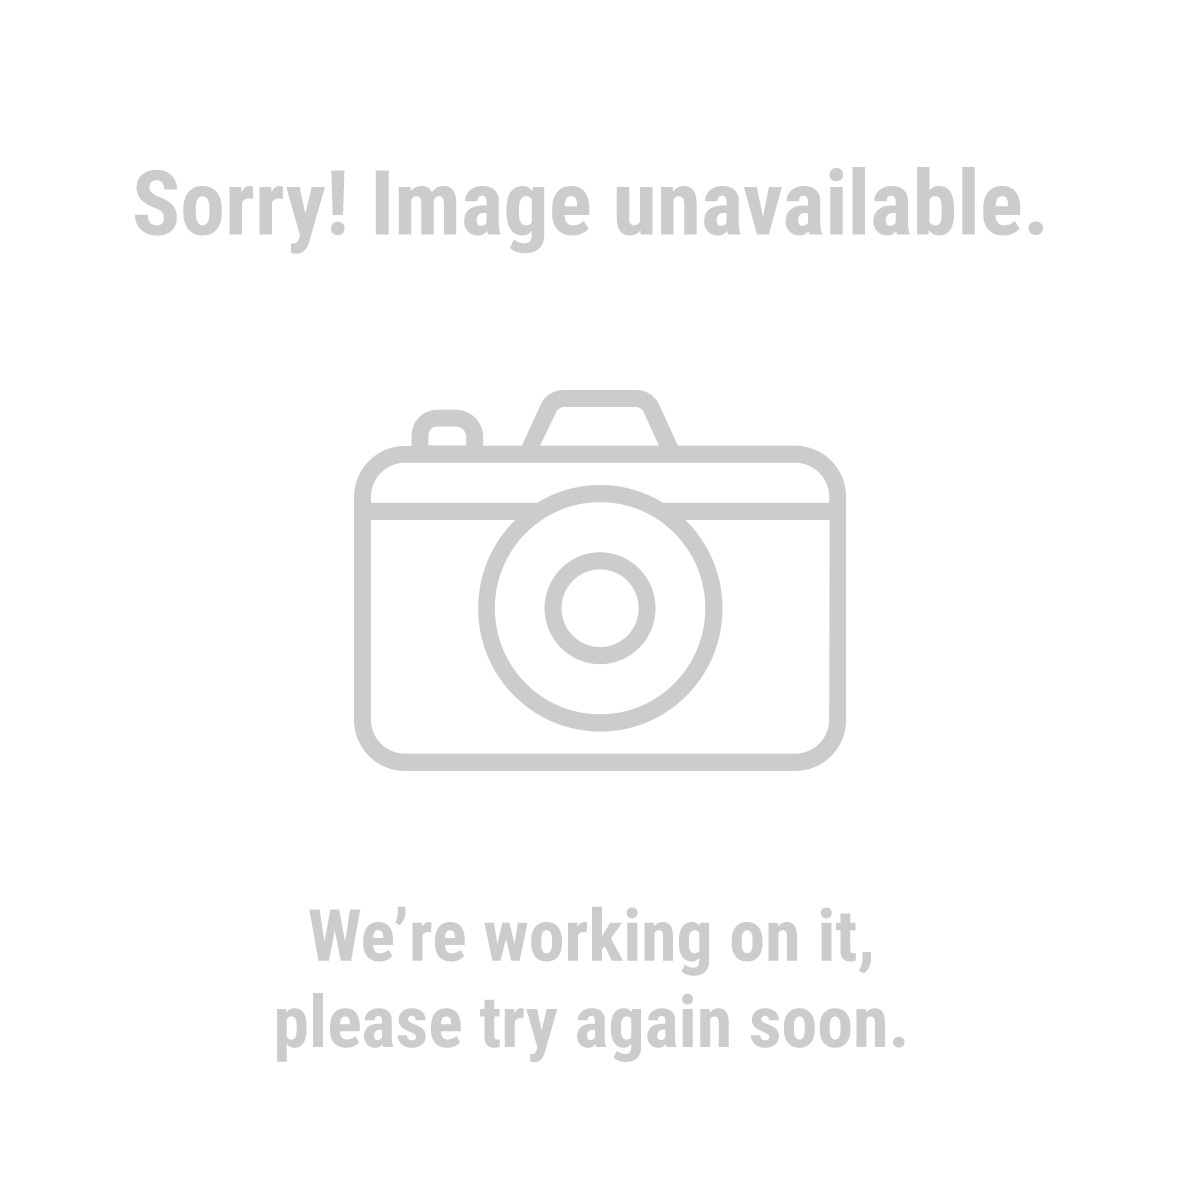 18 Gauge 2-in-1 Nailer/Stapler